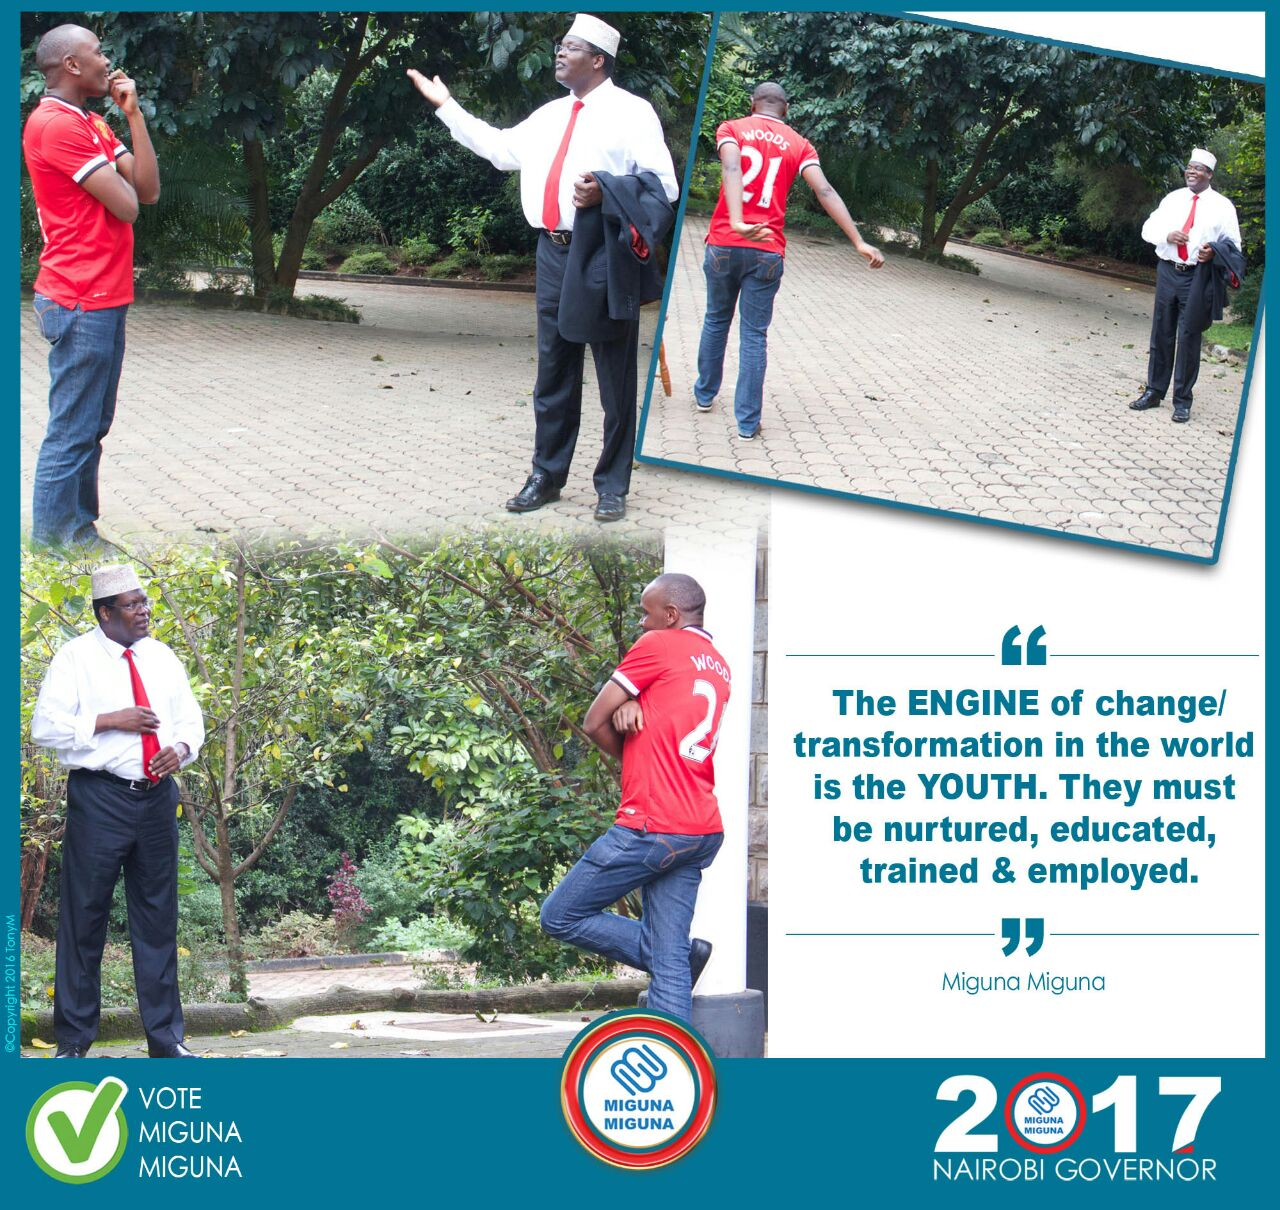 The future of the Nairobi youth is secure.